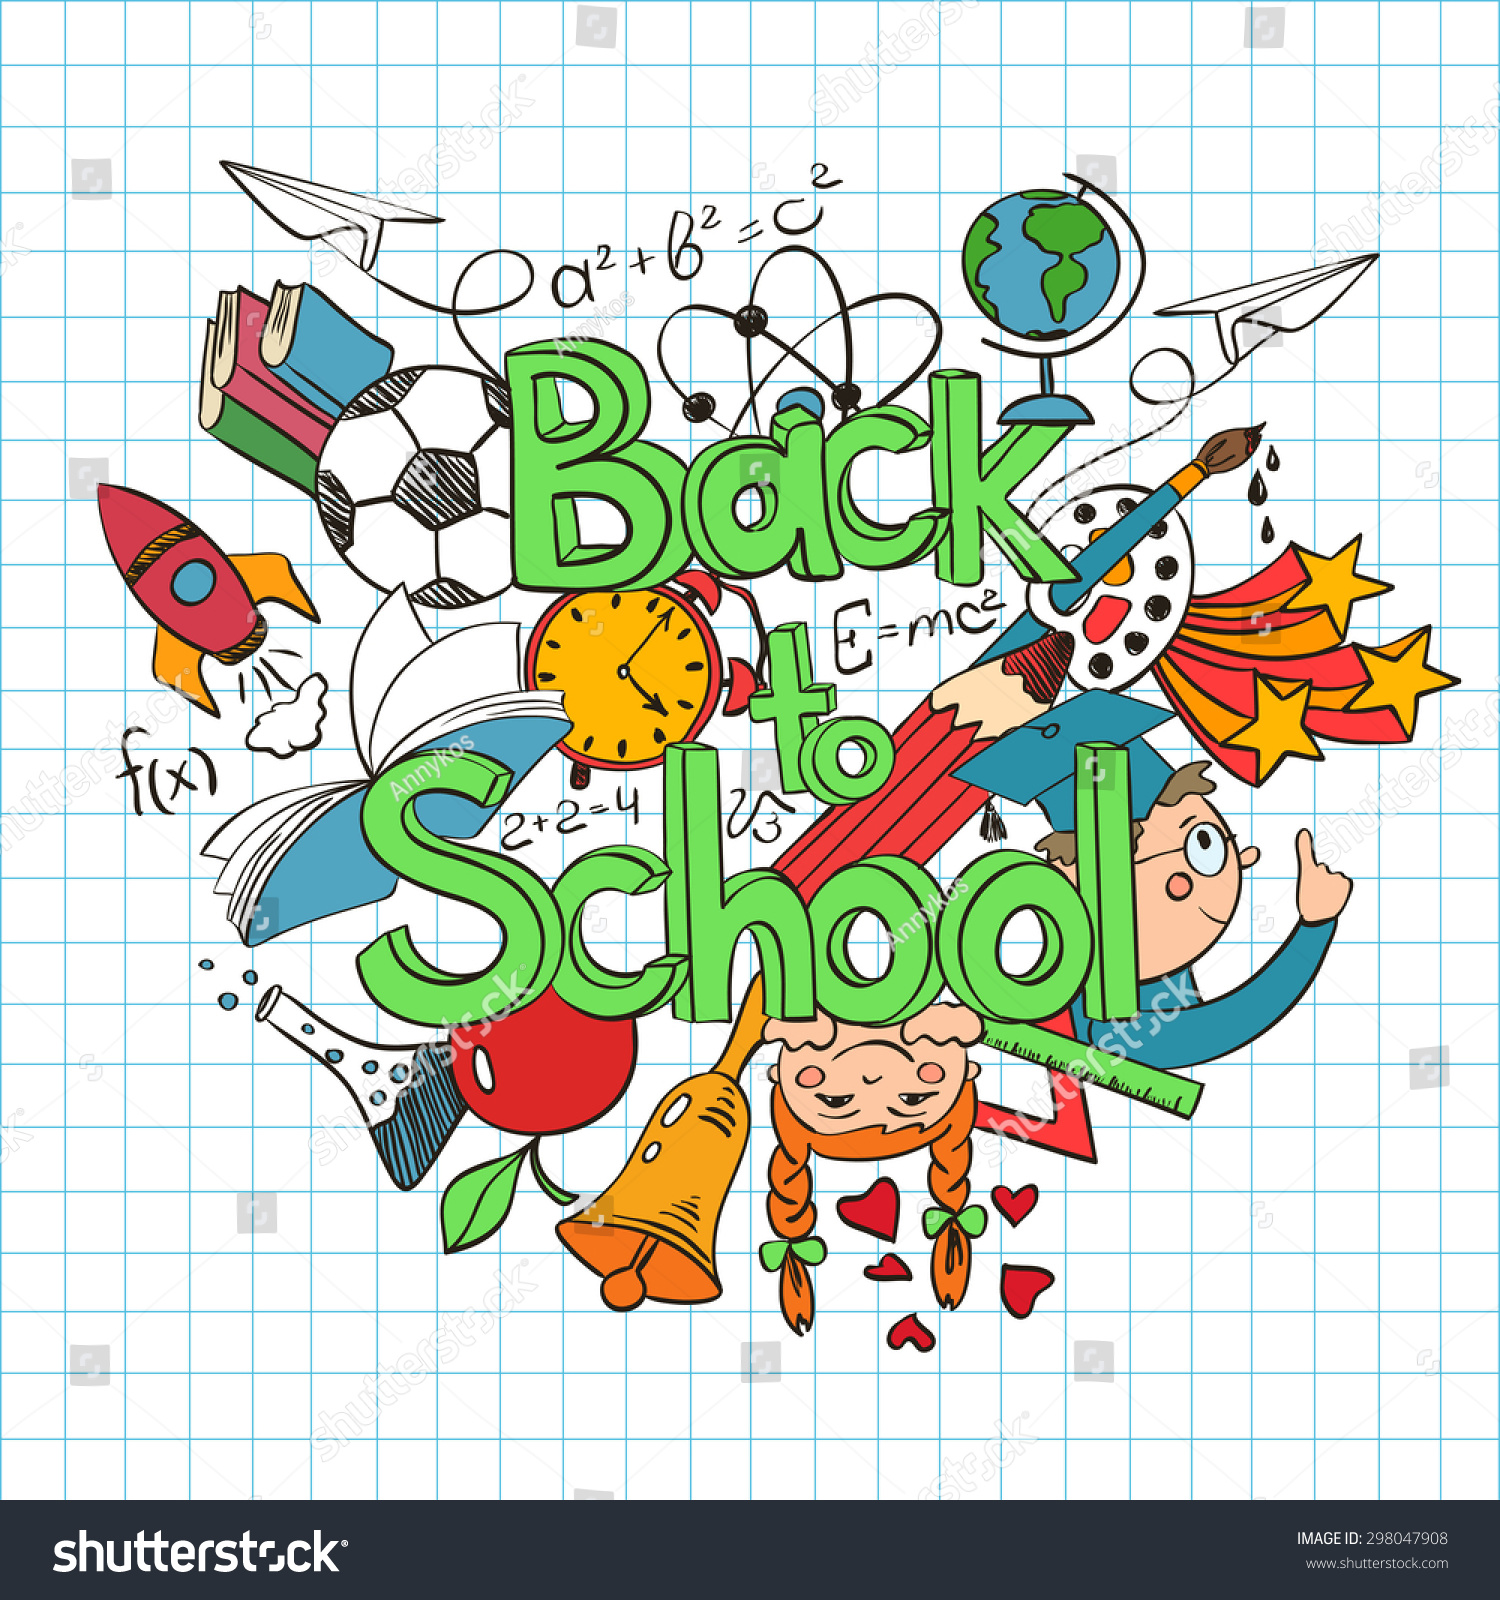 Hand Drawn Colorful Sketch Back School Stock Vector 298047908 ...